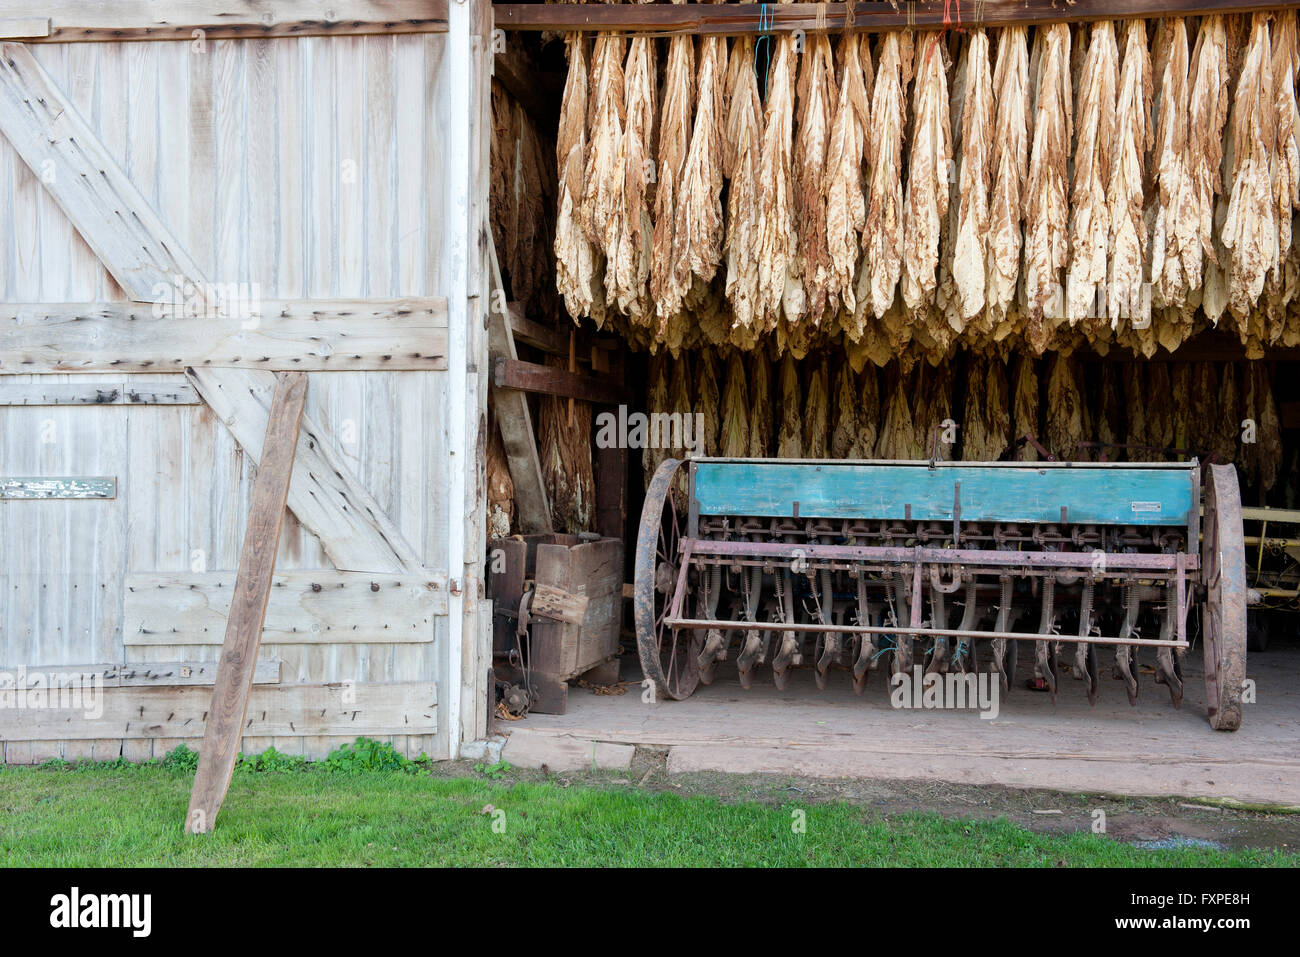 Tobacco leaves drying in barn, Ephrata, Pennsylvania, USA - Stock Image